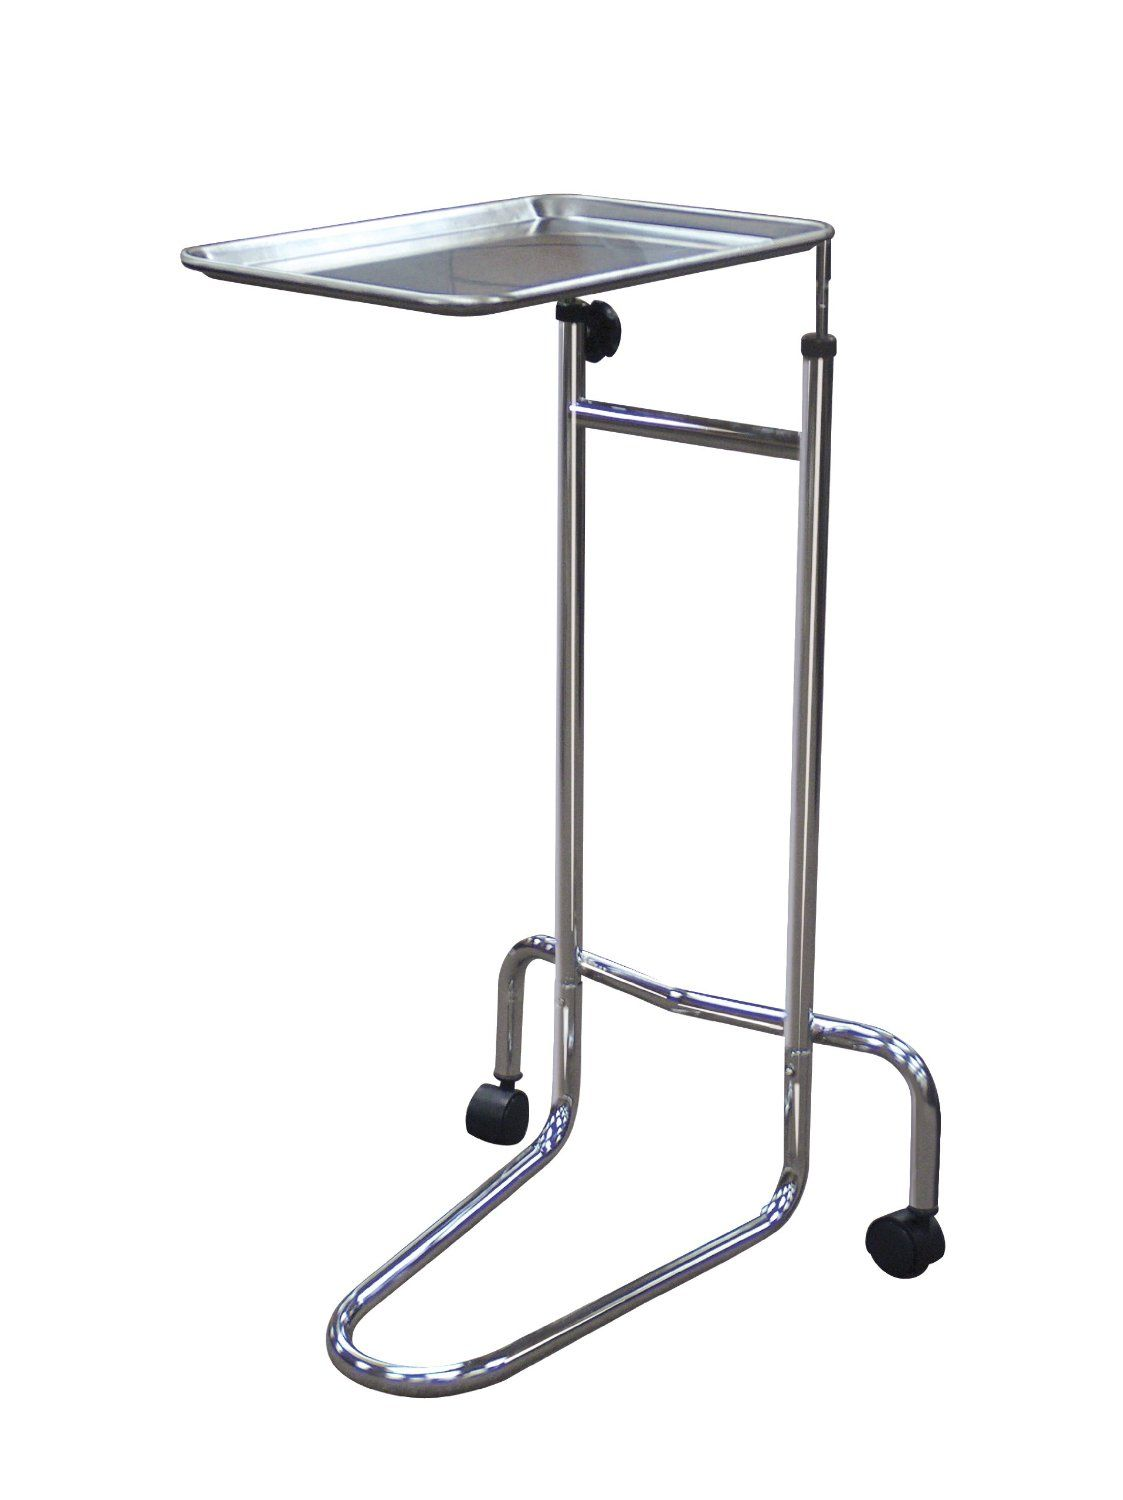 Amazon.com: Drive Medical Double Post Mayo Instrument Stand, Chrome: $95